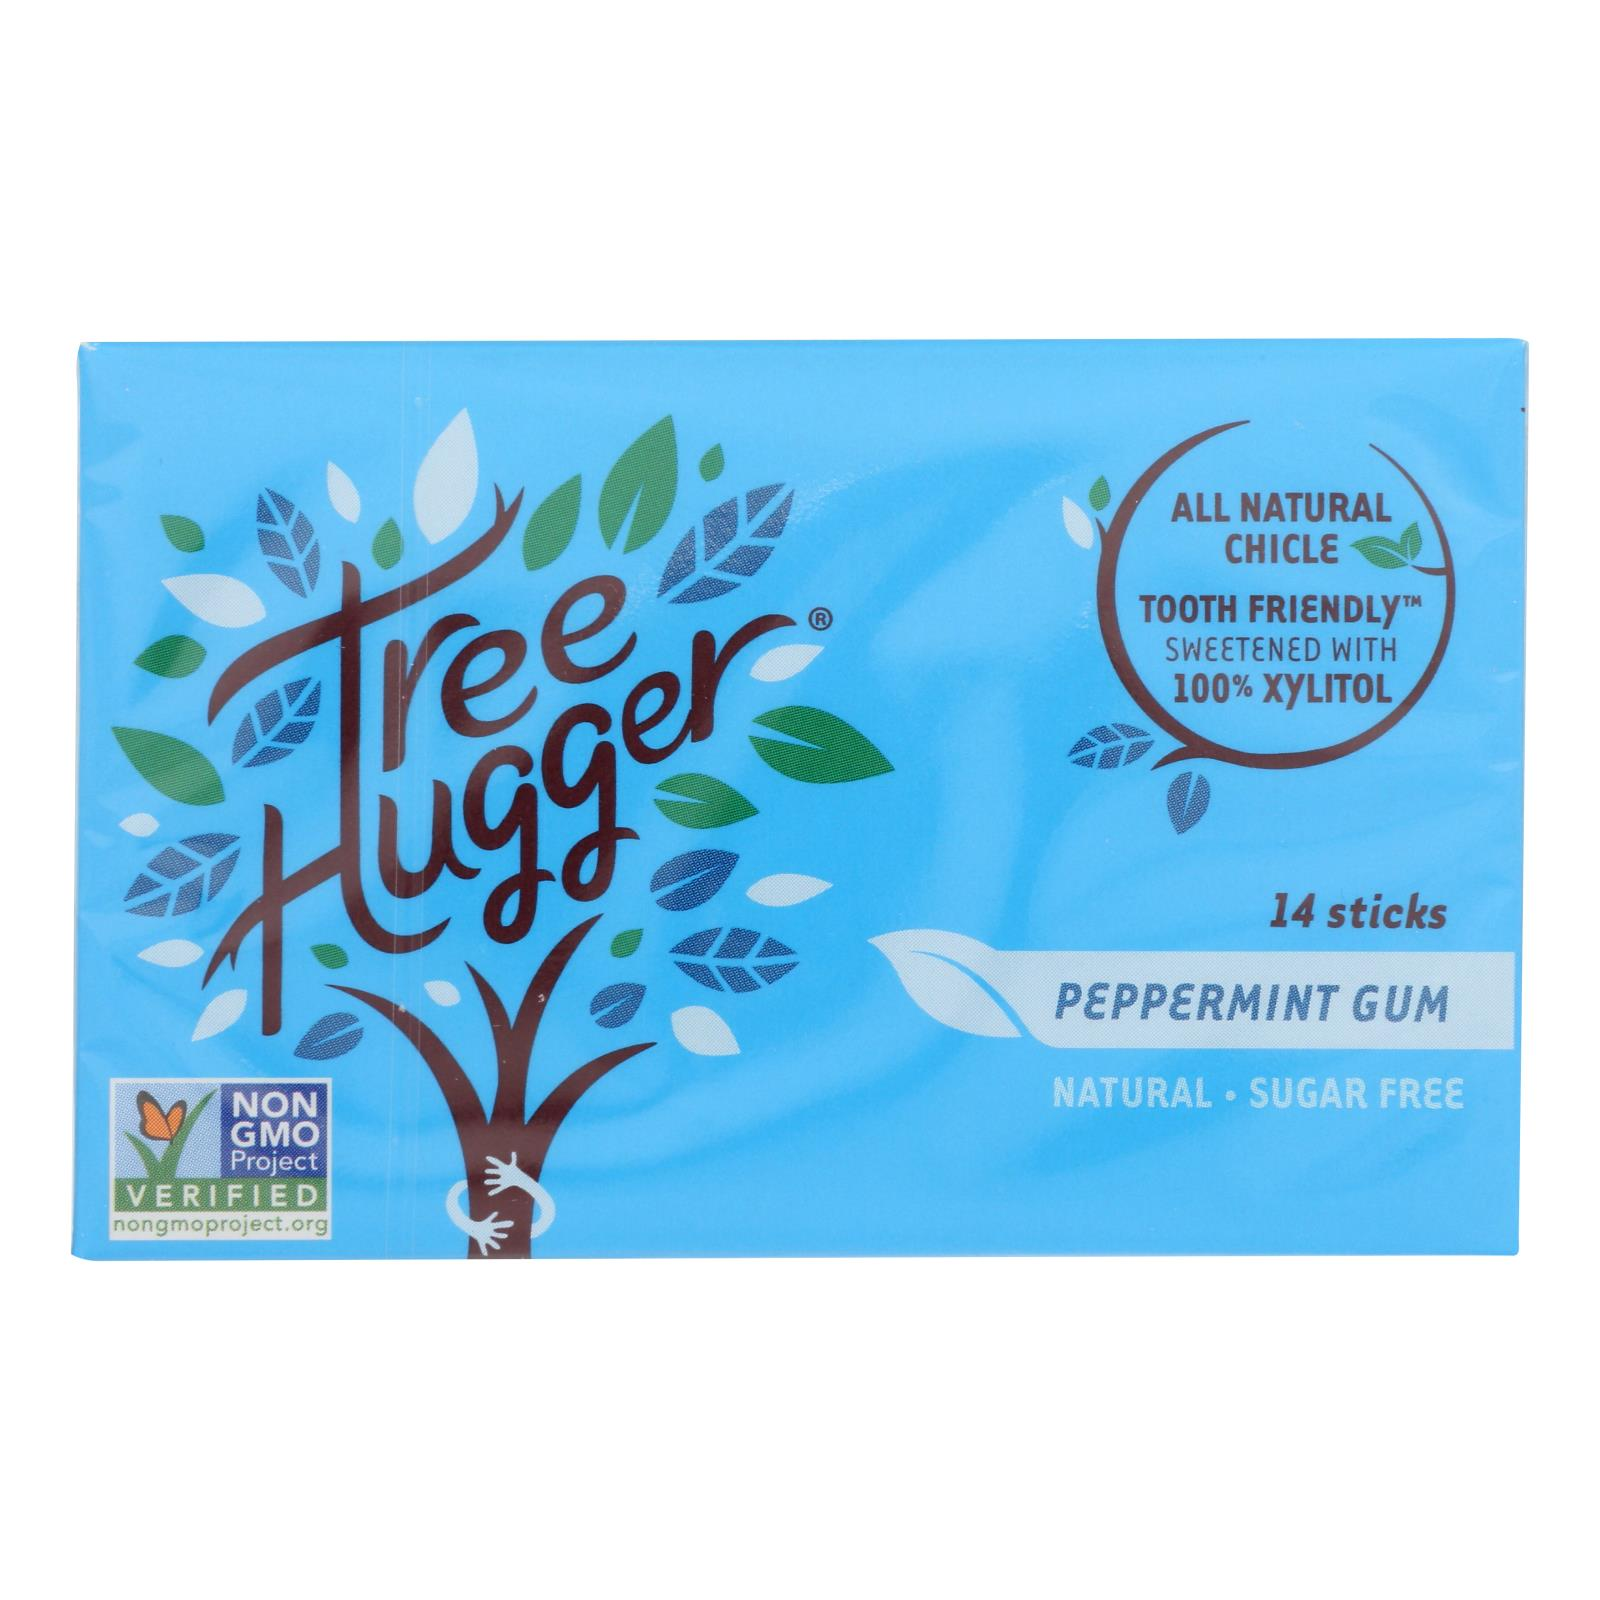 Tree Hugger - Gum Peppermint Xylitol - Case of 12 - 14 CT